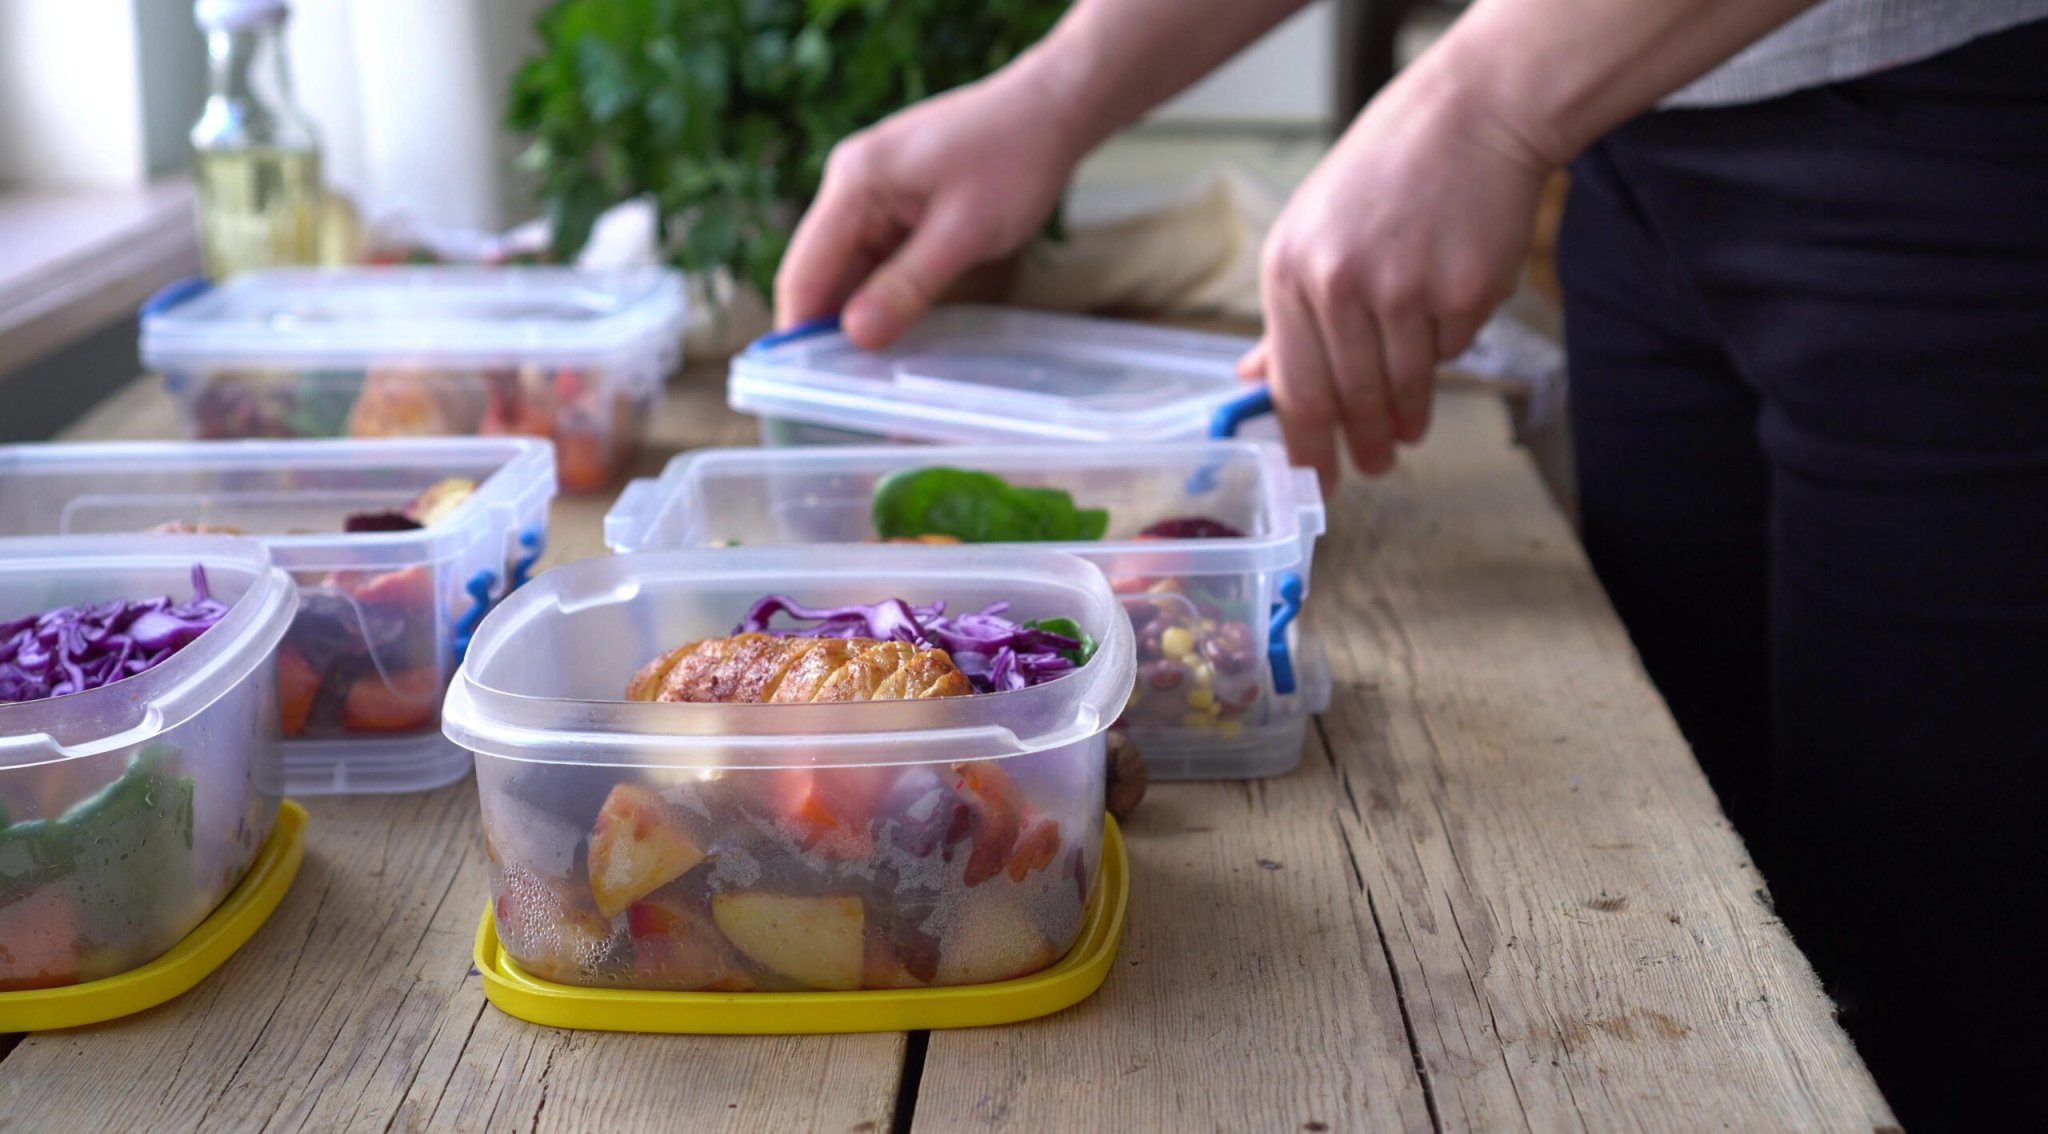 5 Easy Ways To Add Variety To Your Meal Prep Routine To Eat Something Different Every Day